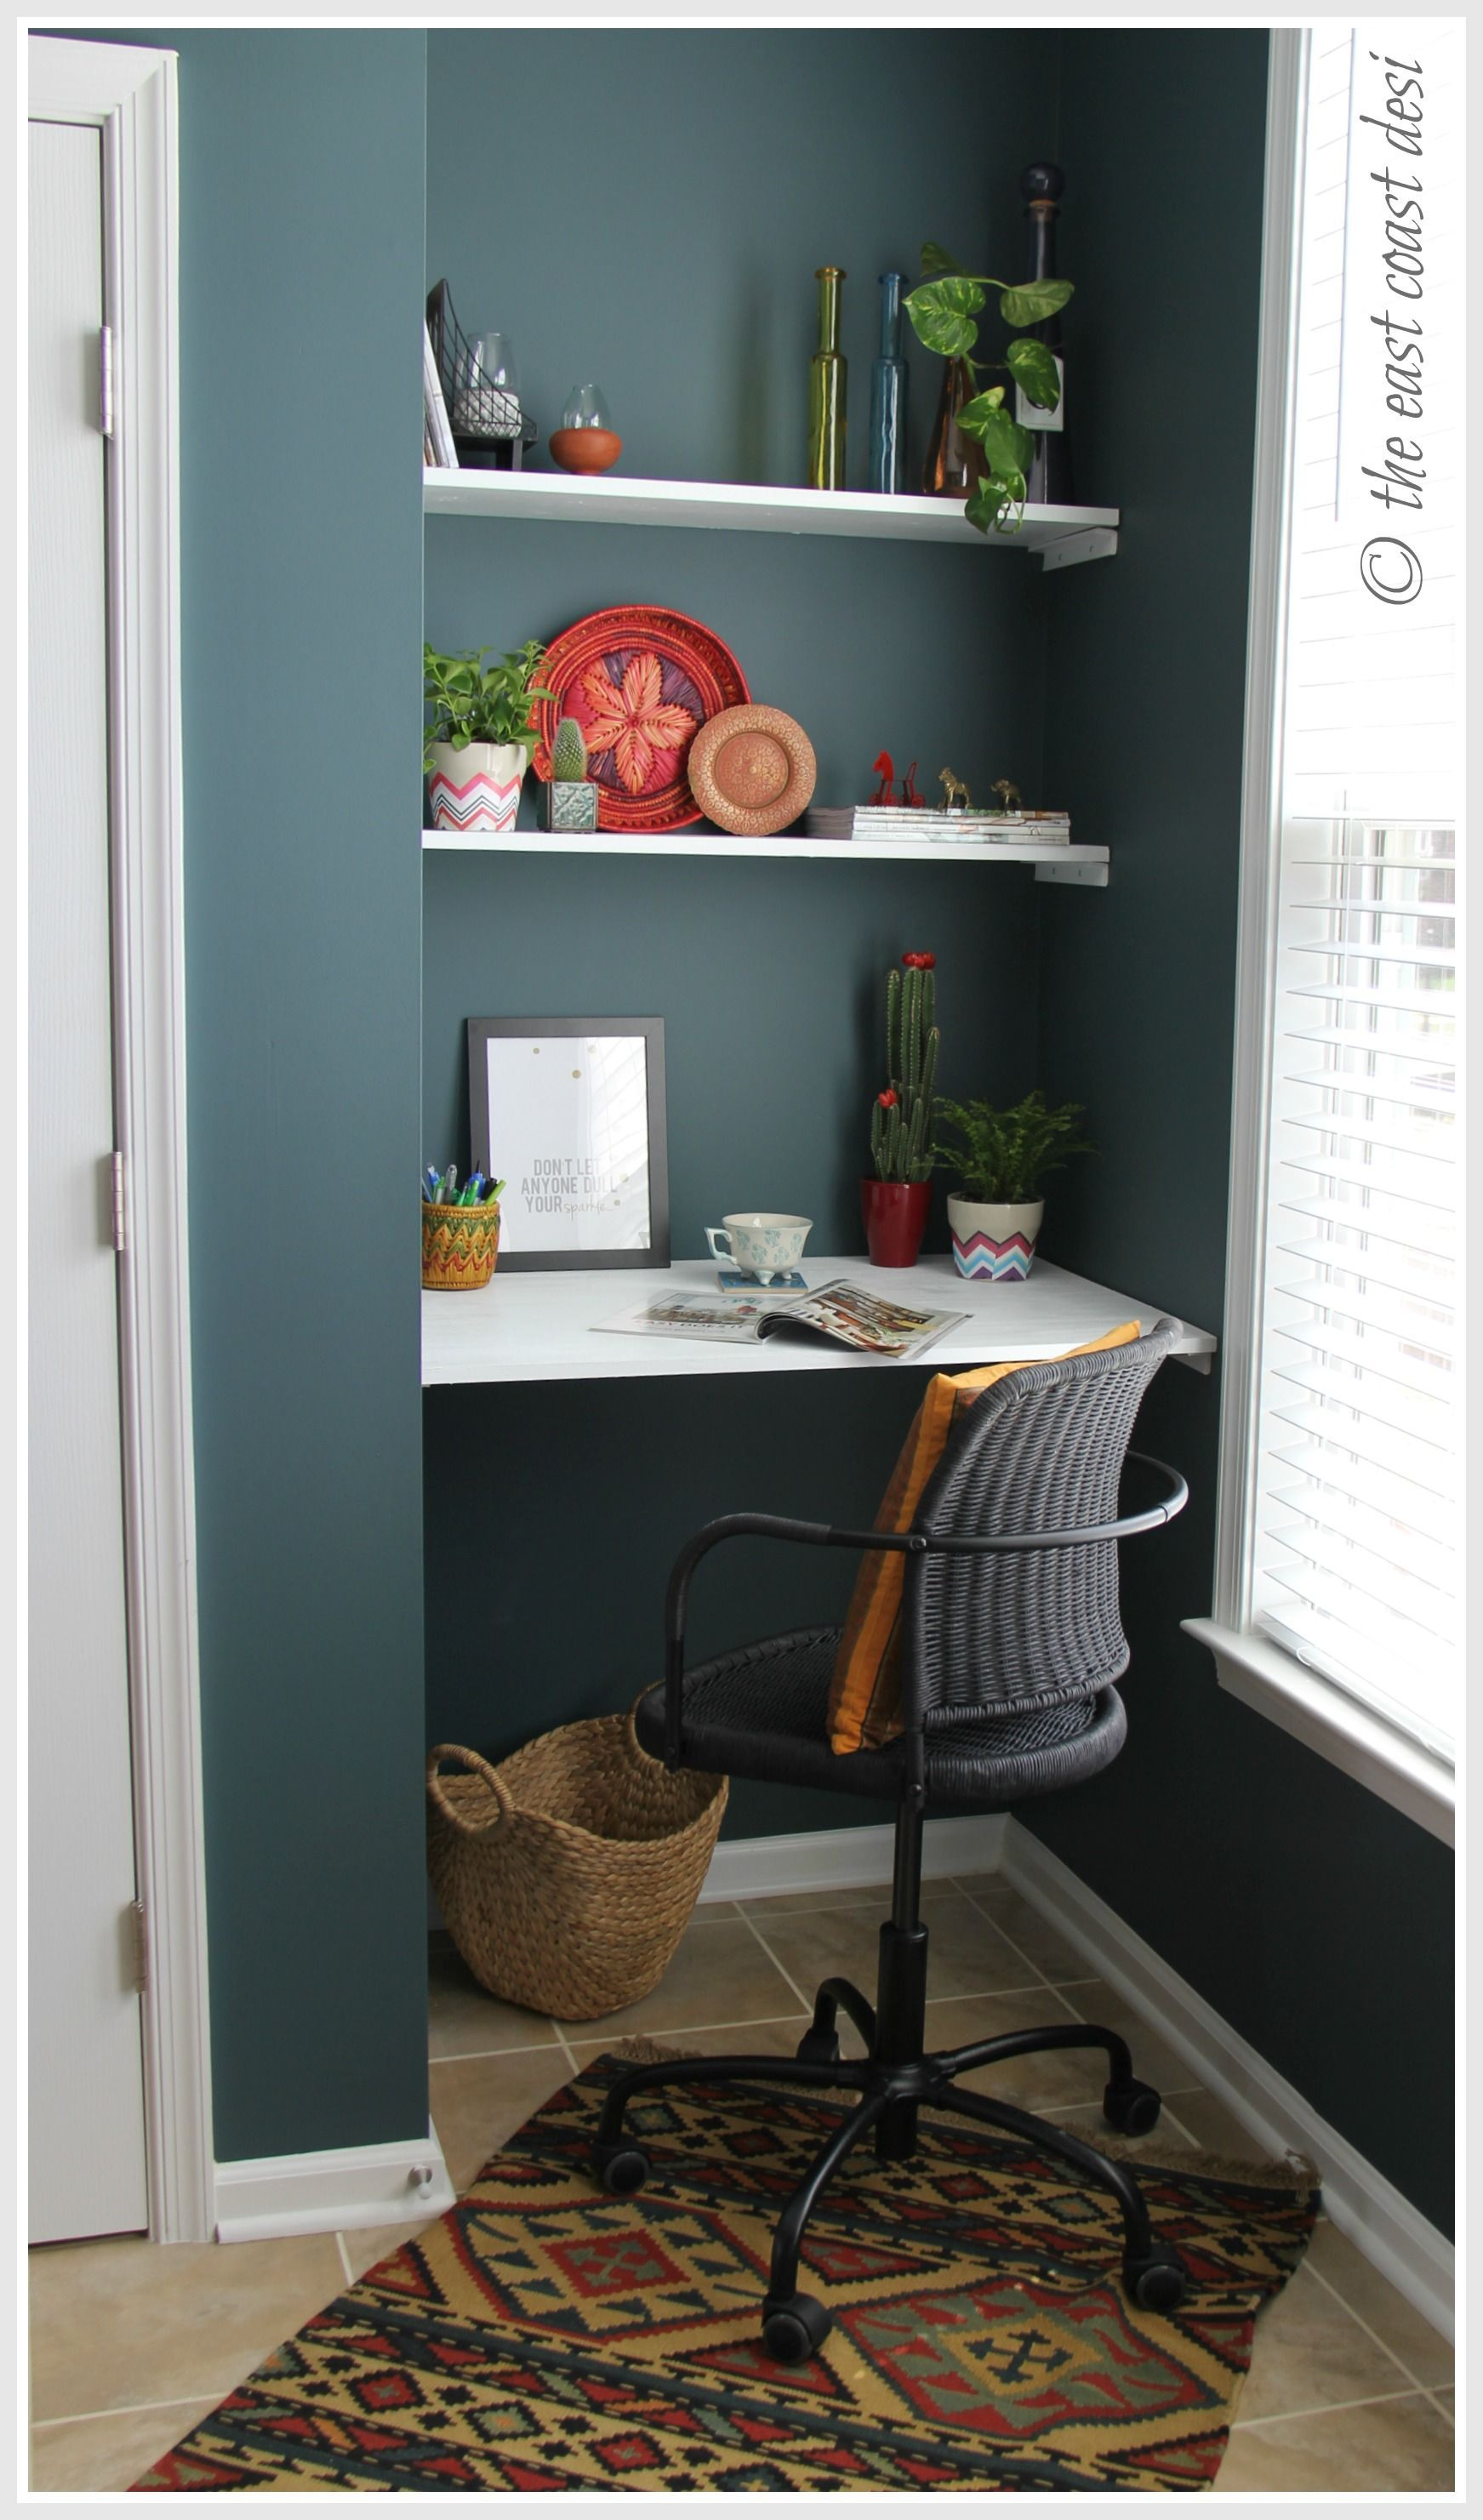 21 Ultimate List Of Diy Computer Desk Ideas With Plans Best Home